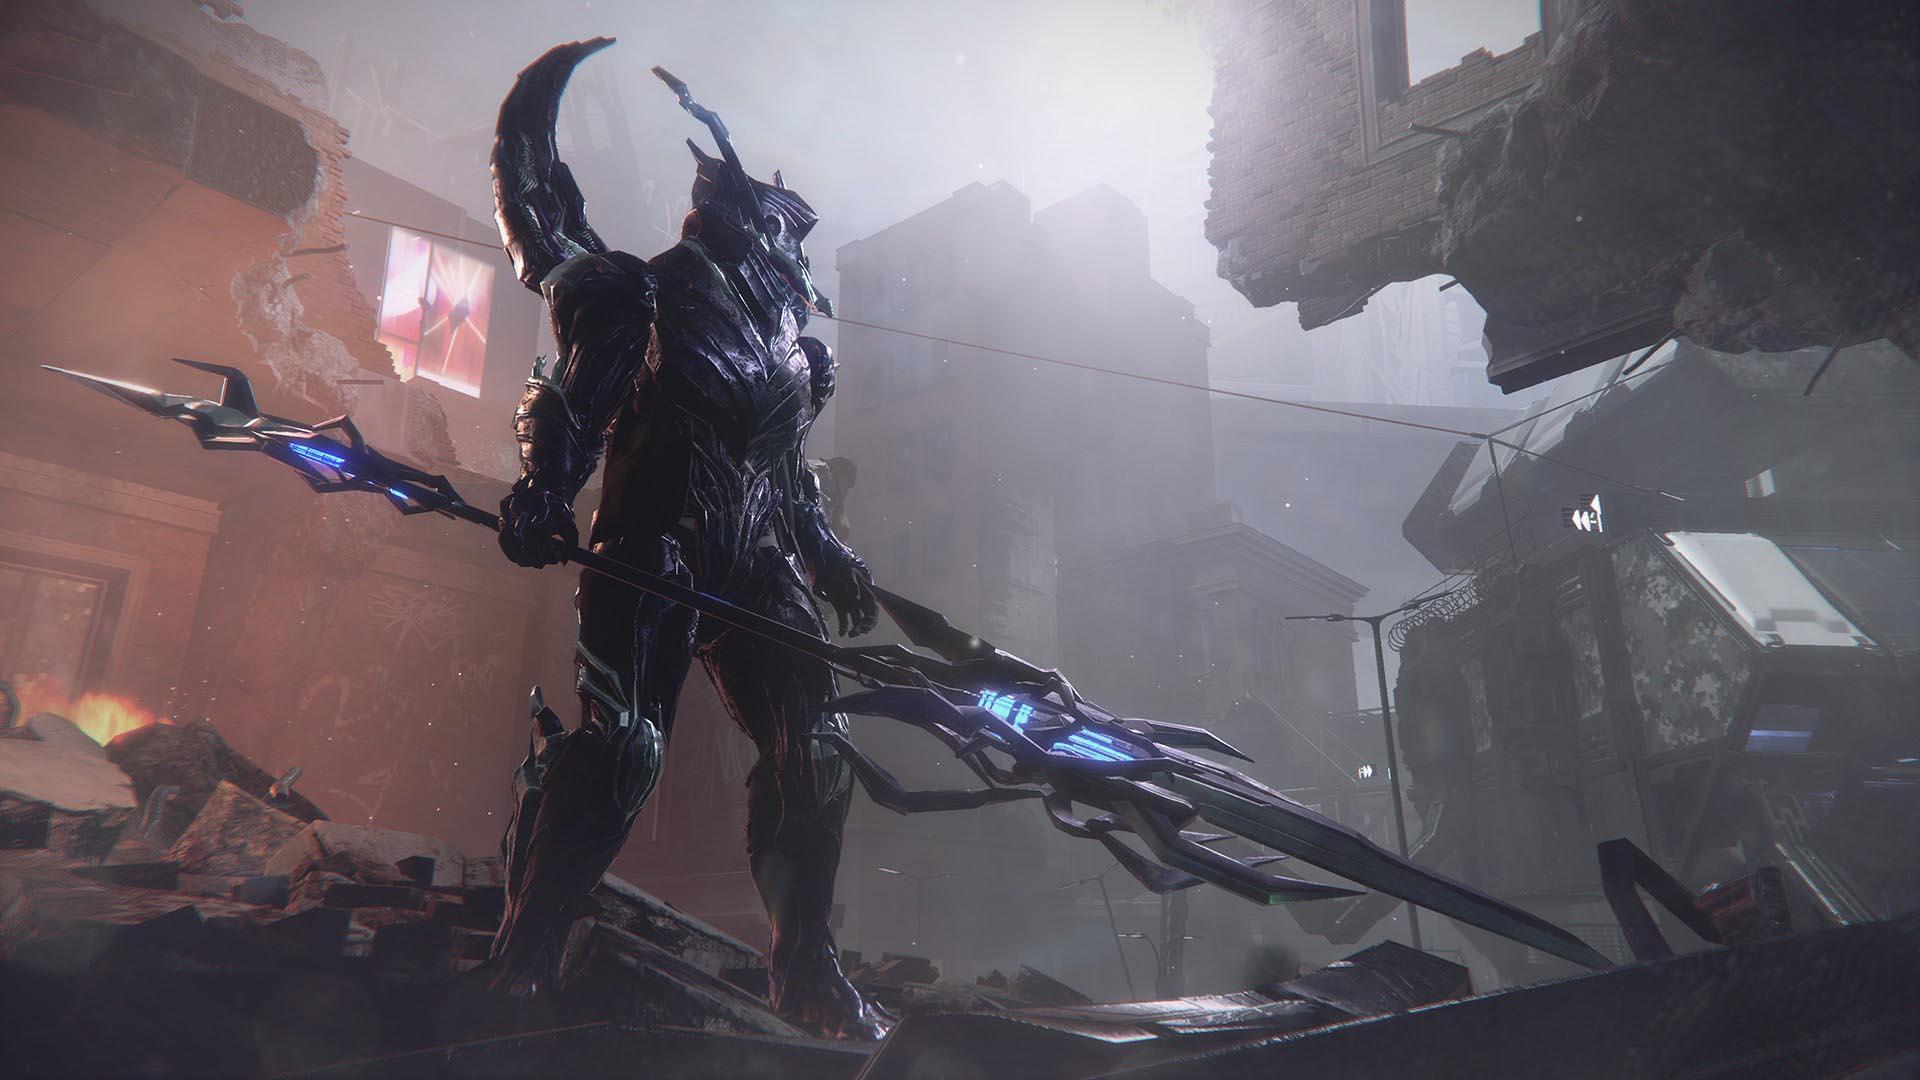 the surge 2 focus home interactive story trailer